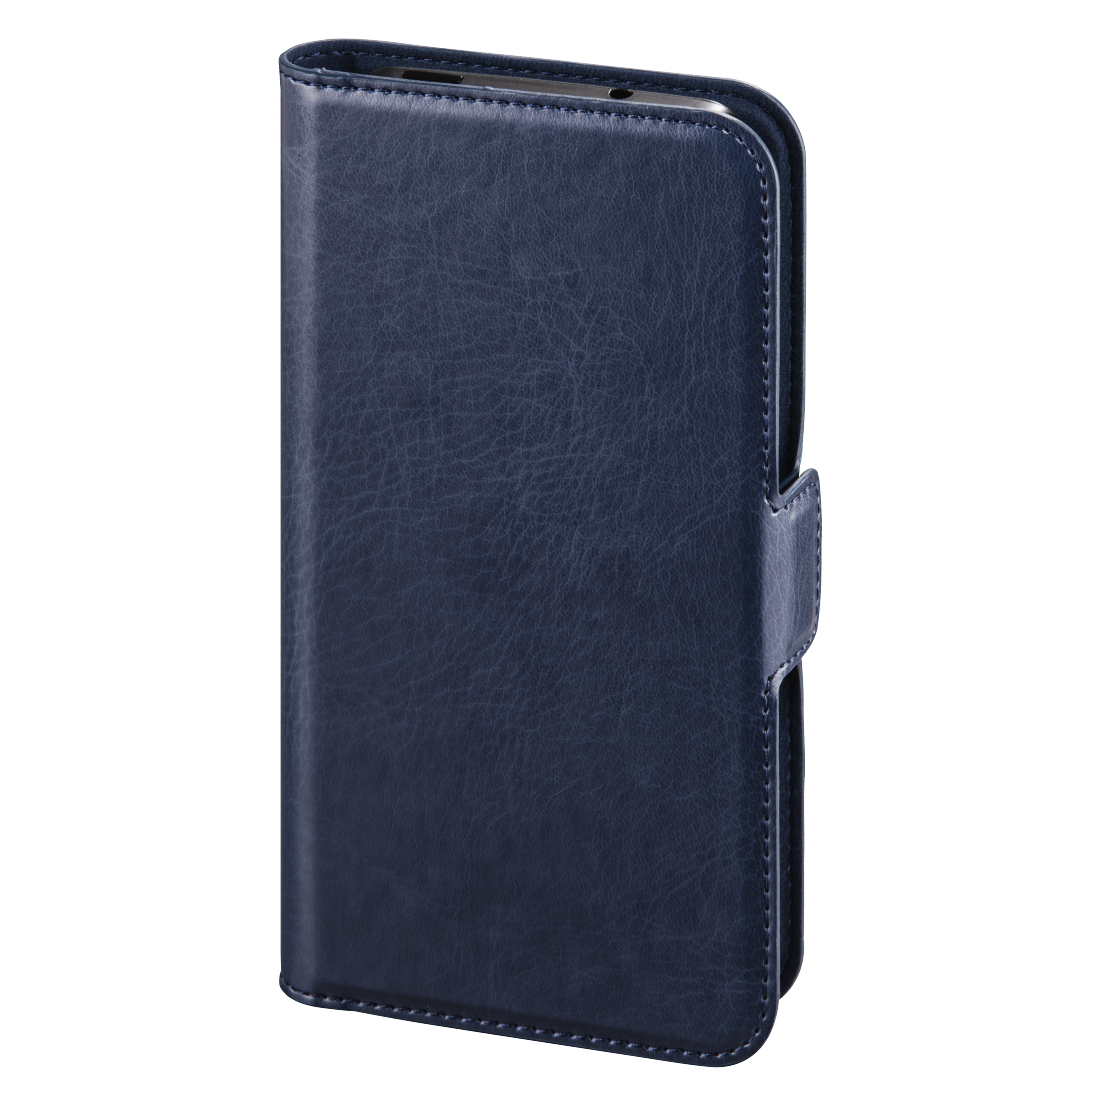 abx2 High-Res Image 2 - Hama, Smart Move Booklet Case, size L (4.0 - 4.5), blue